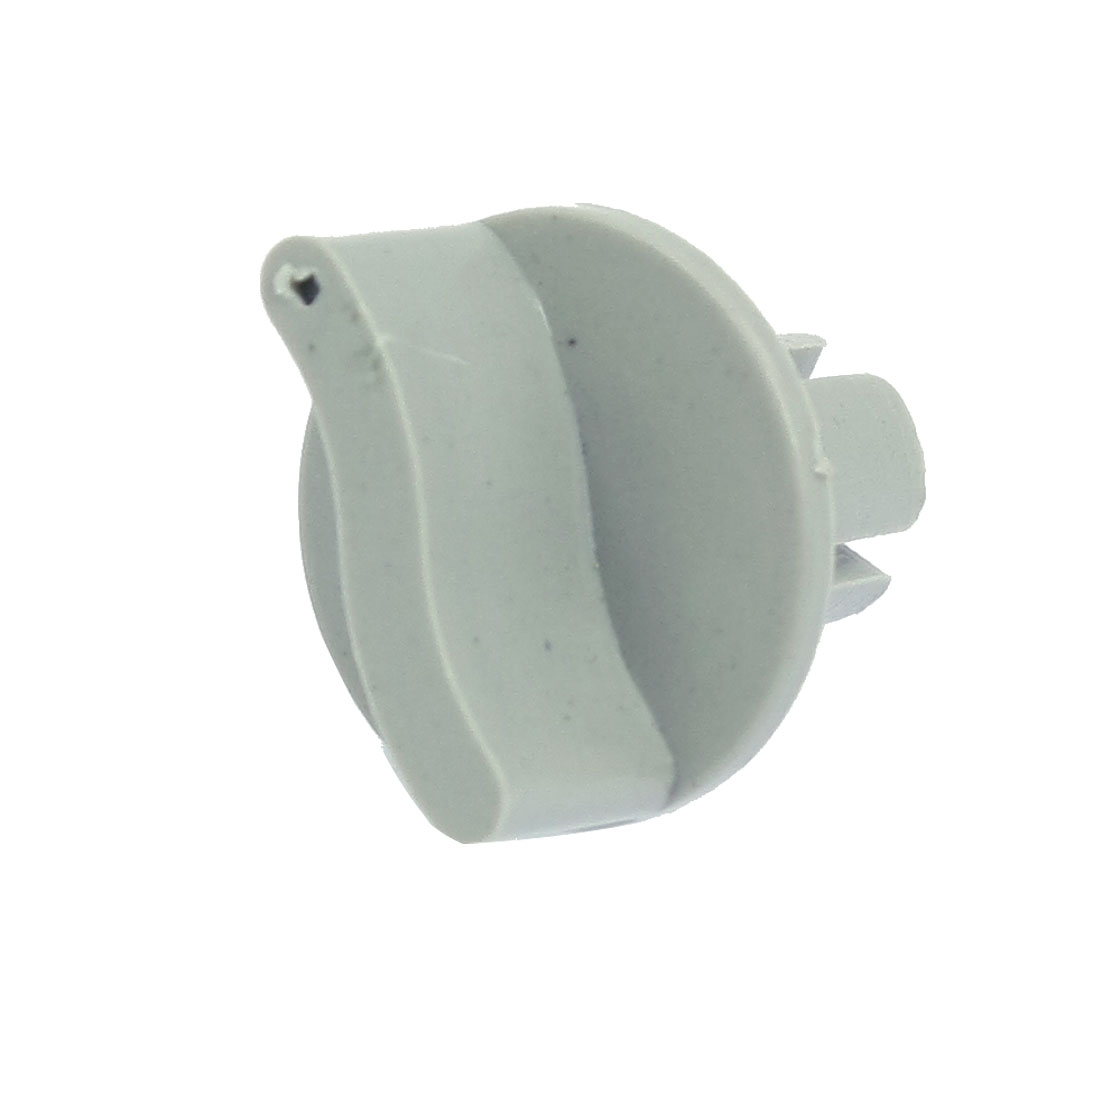 Washing Machine Parts Hard Plastic Turning Knob Gray